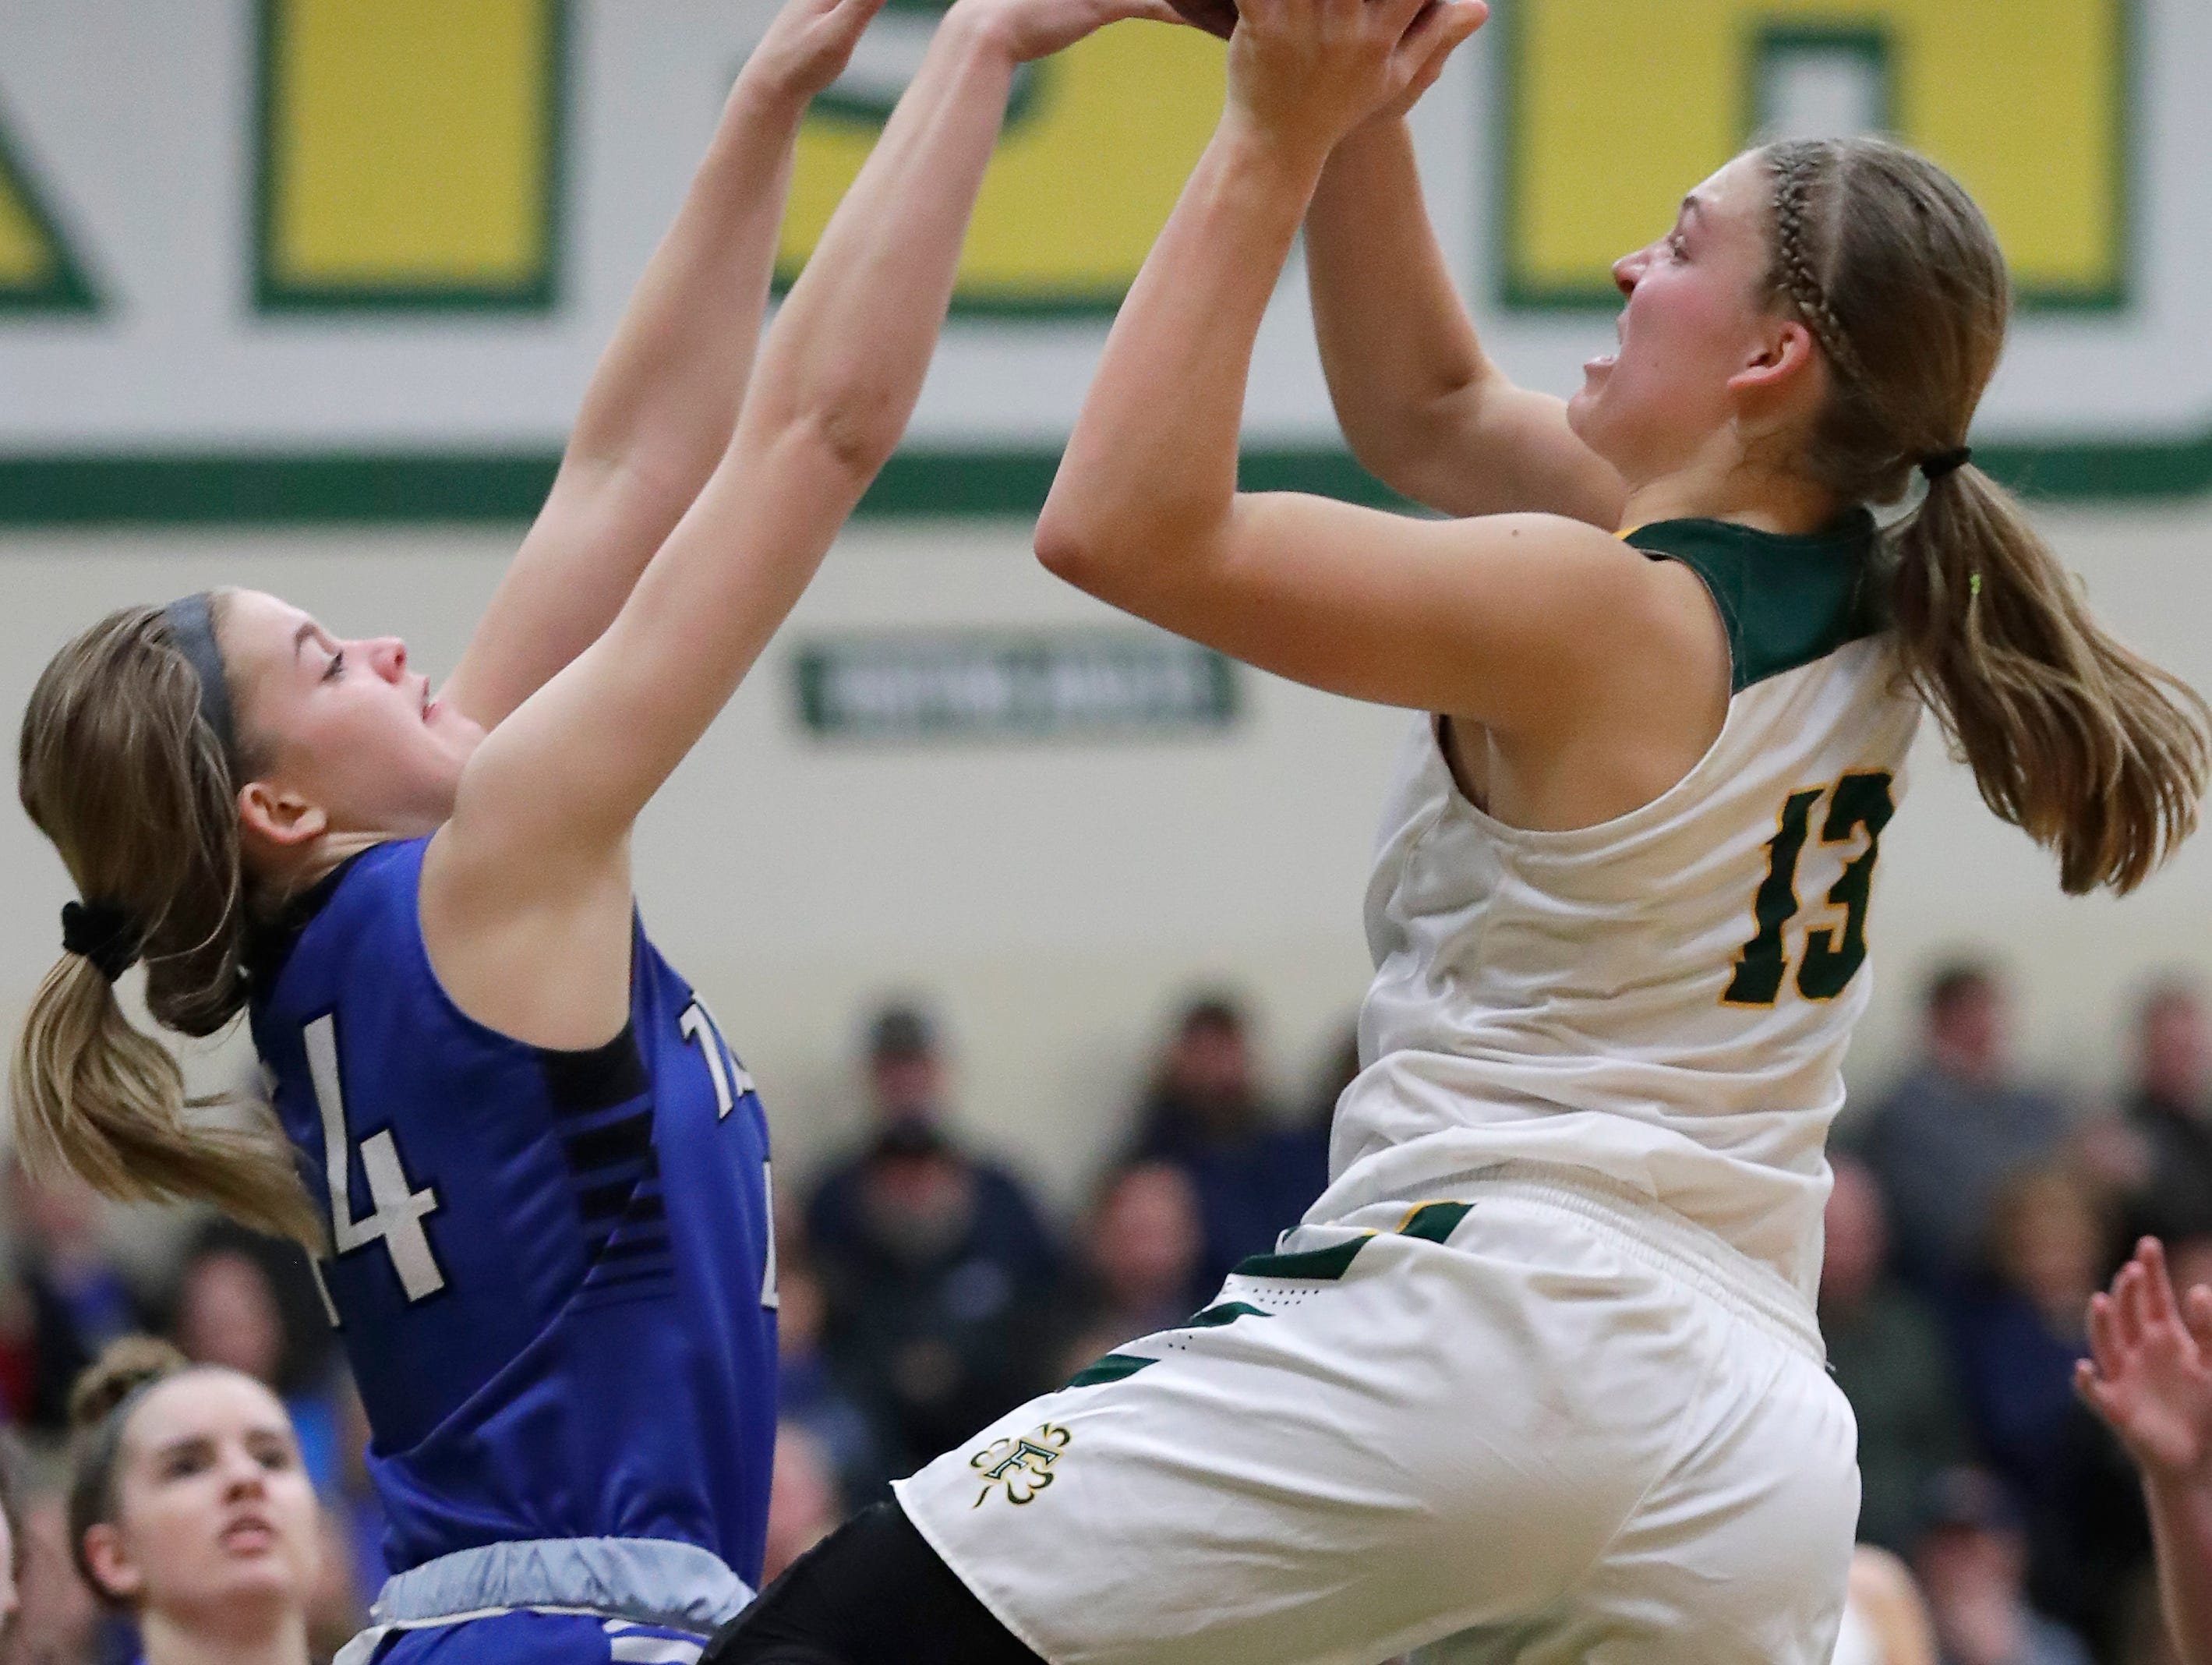 Freedom High School's #13 Gabby Johnson against Wrightstown High School's #44 Ella Diny during their North Eastern Conference girls basketball game on Thursday, January 3, 2019, in Freedom, Wis. Freedom defeated Wrightstown 54 to 34.Wm. Glasheen/USA TODAY NETWORK-Wisconsin.